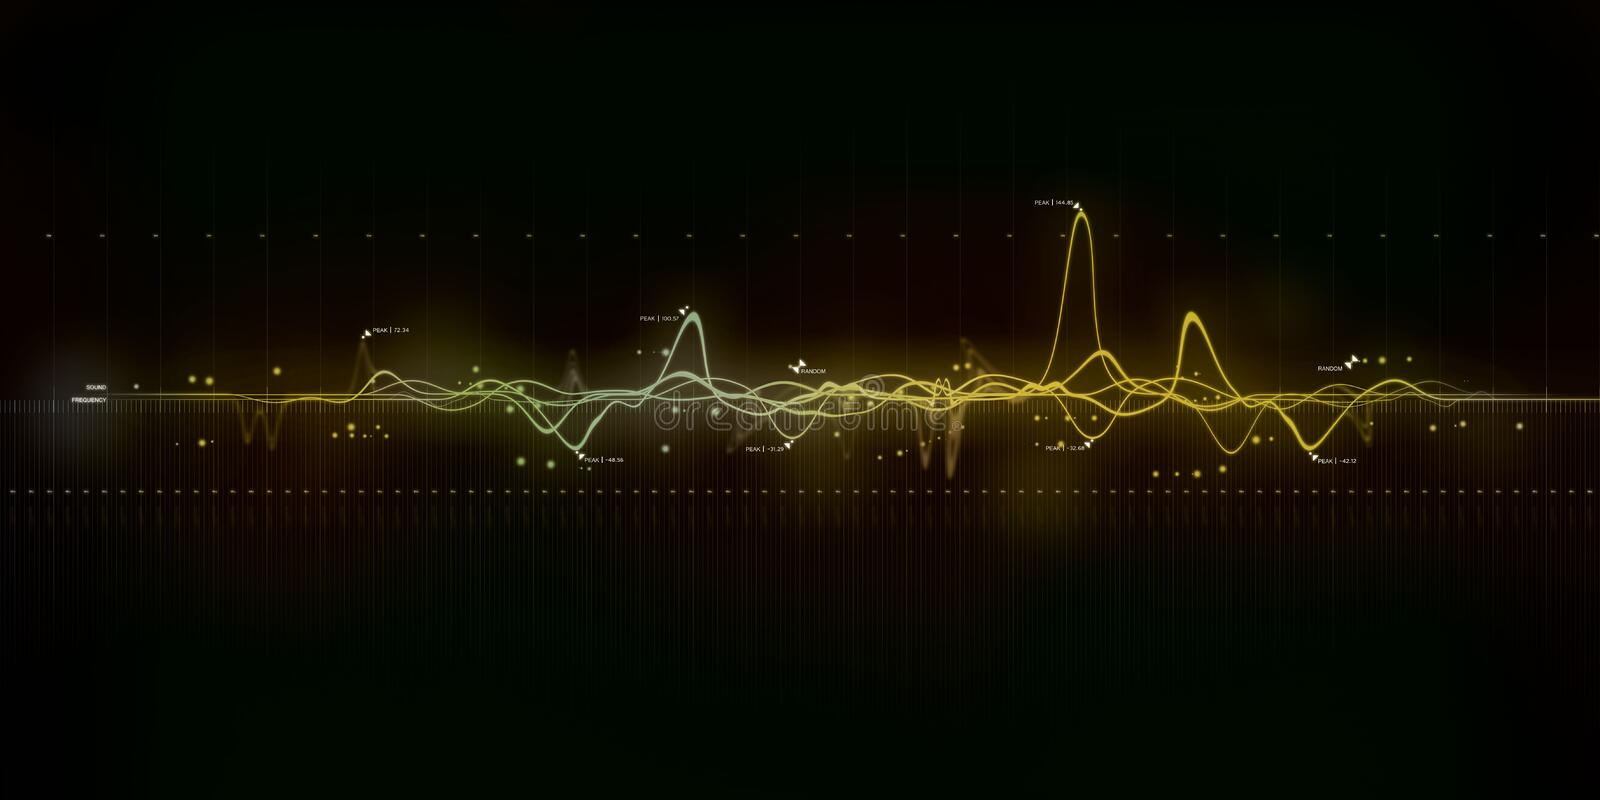 Sound wave modern art royalty free stock images